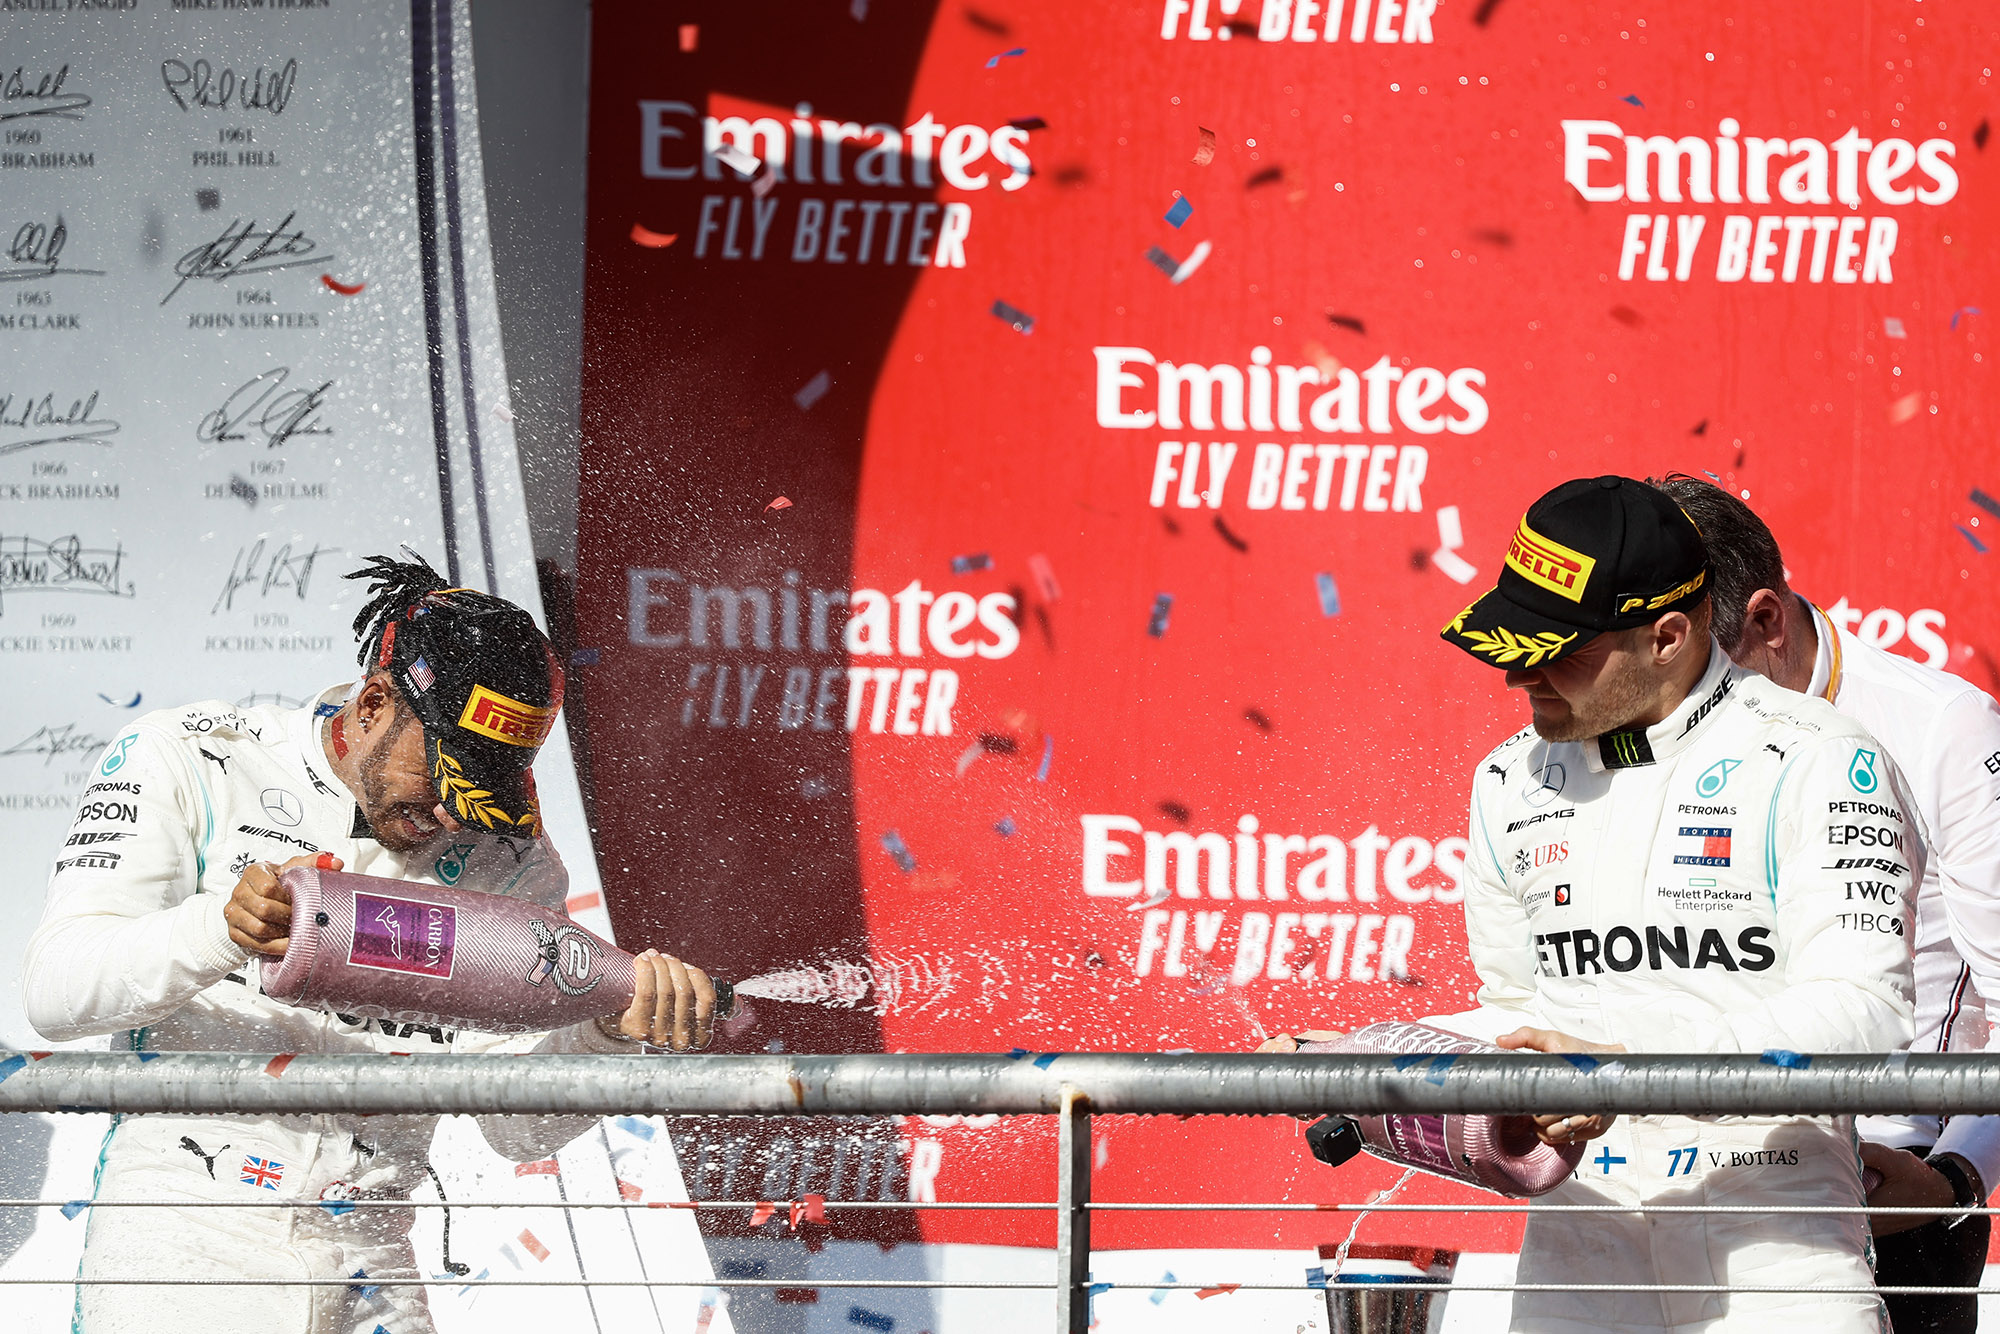 Lewis Hamilton and Valtteri Bottas spray champagne on the podium after the 2019 United States Grand Prix